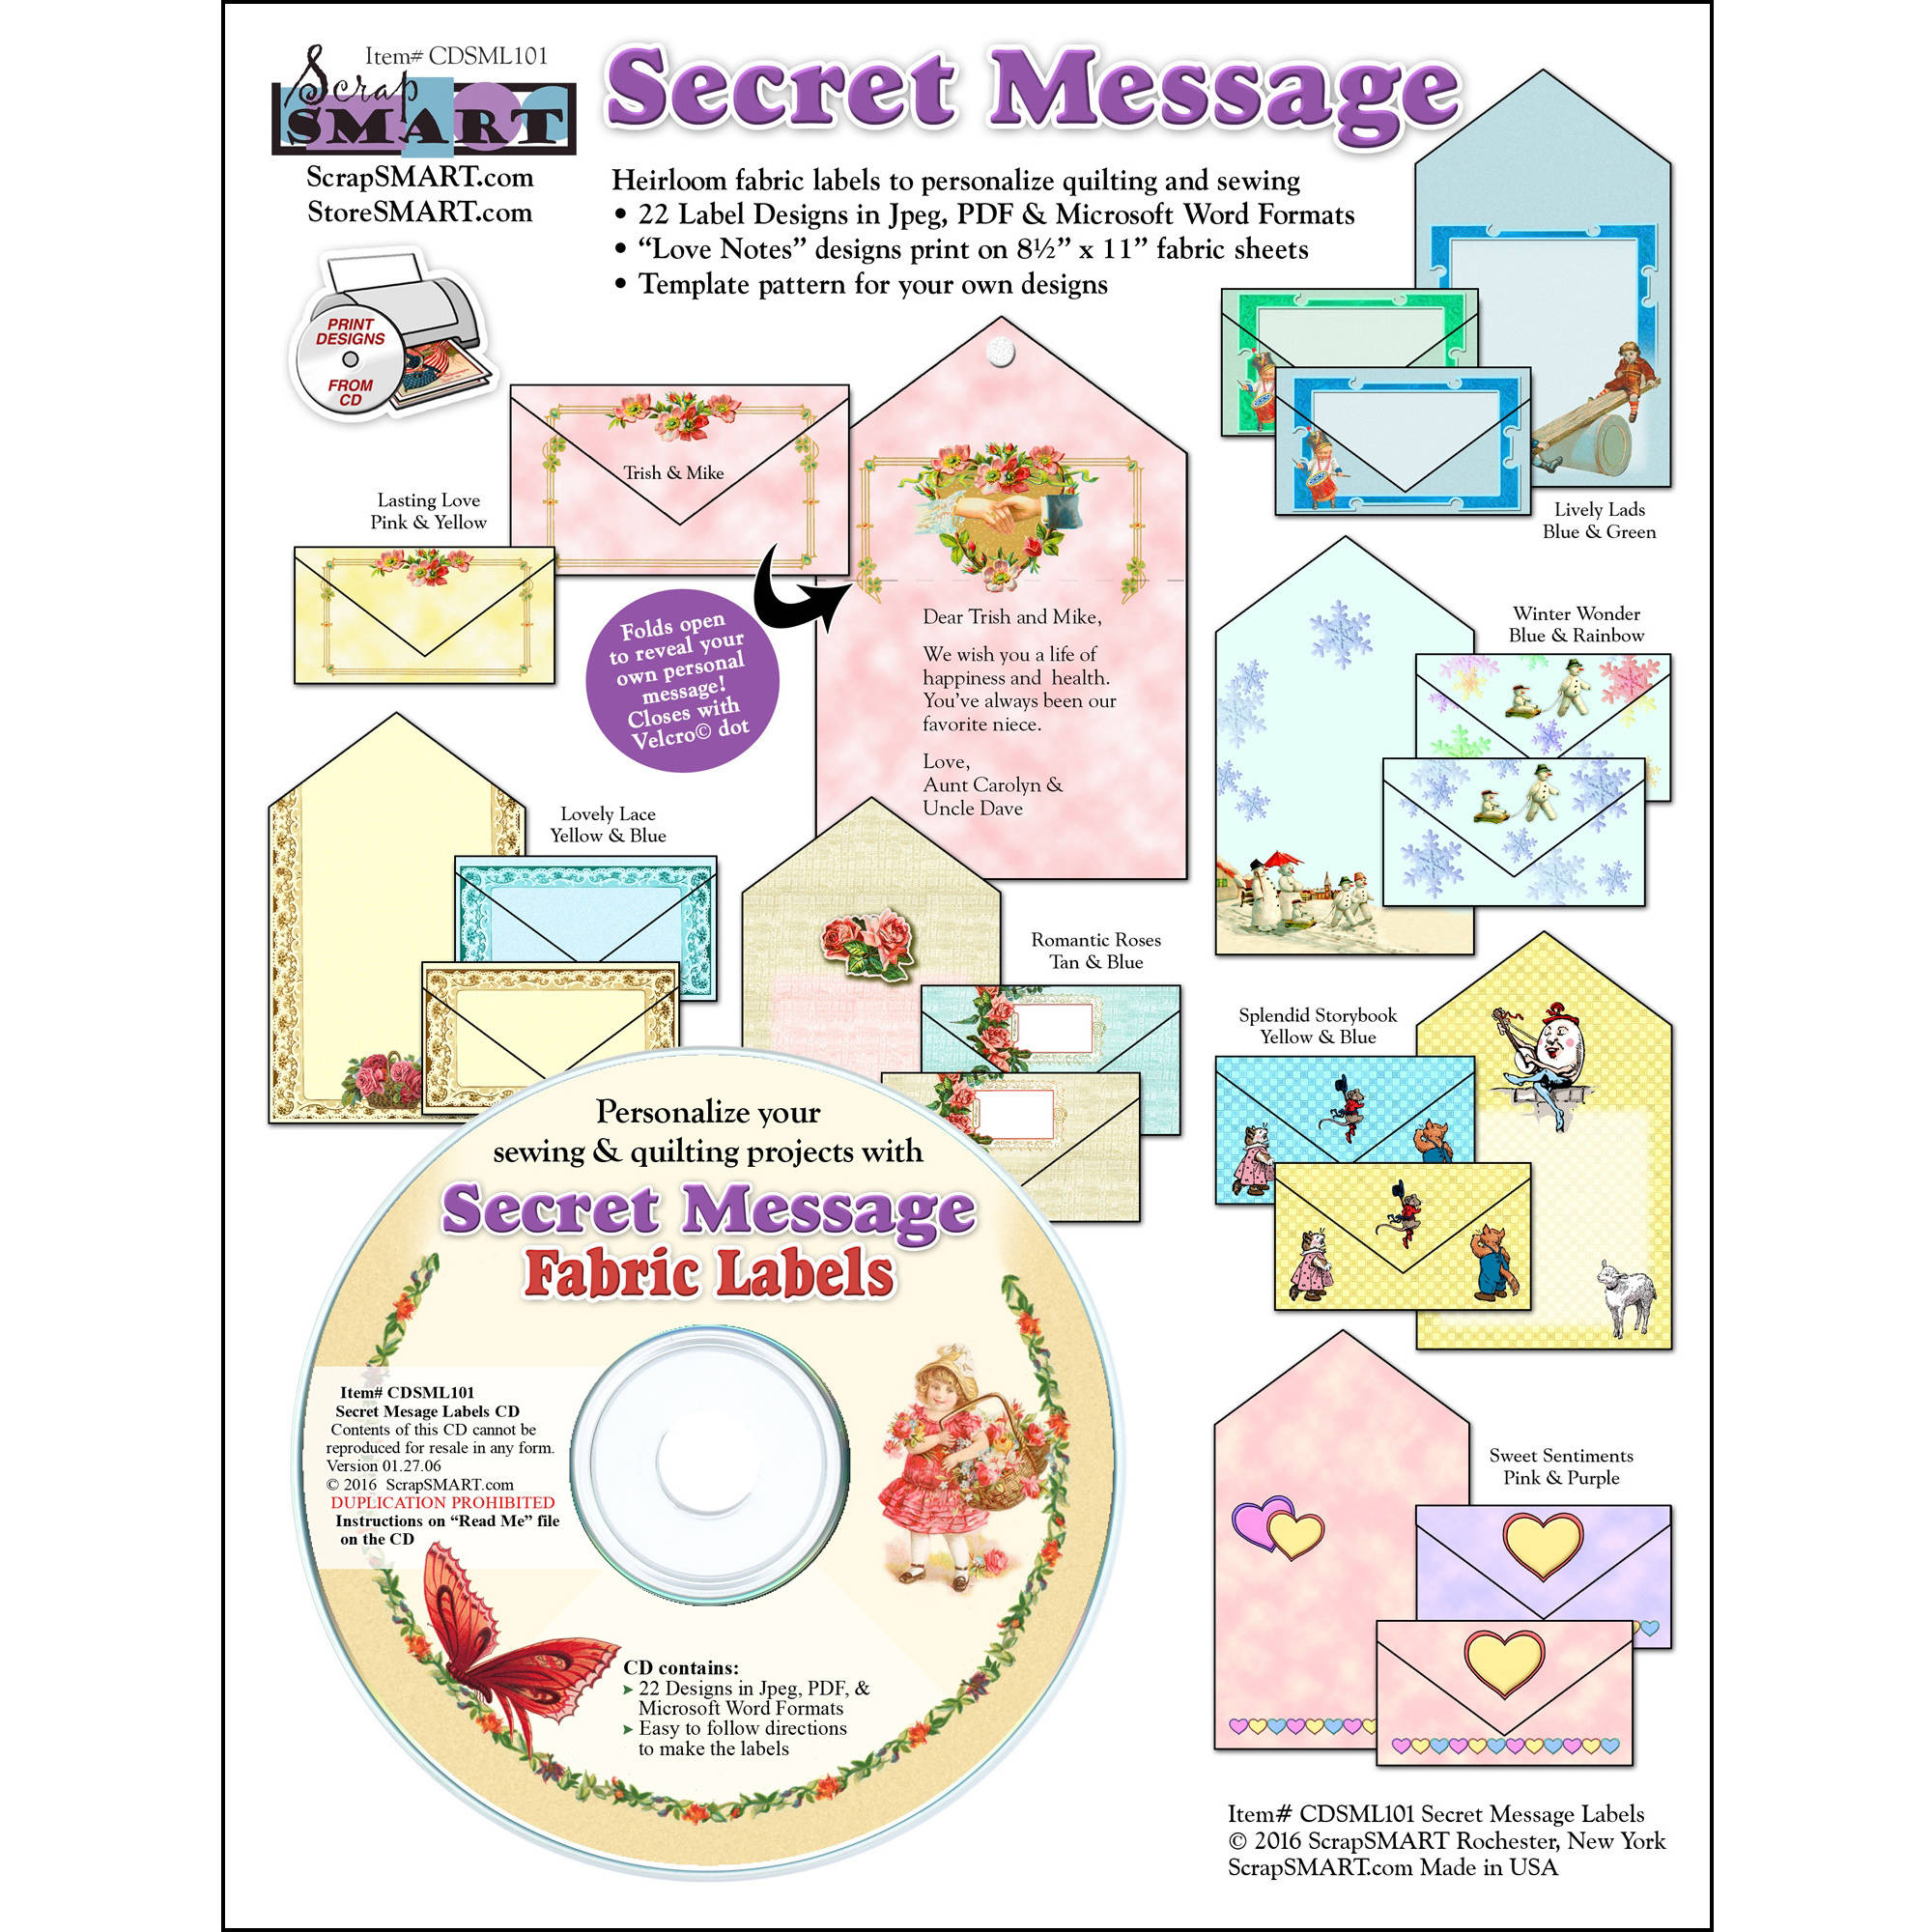 ScrapSMART Secret Message Fabric Labels CD-ROM: Label Designs, Patterns and Instructions